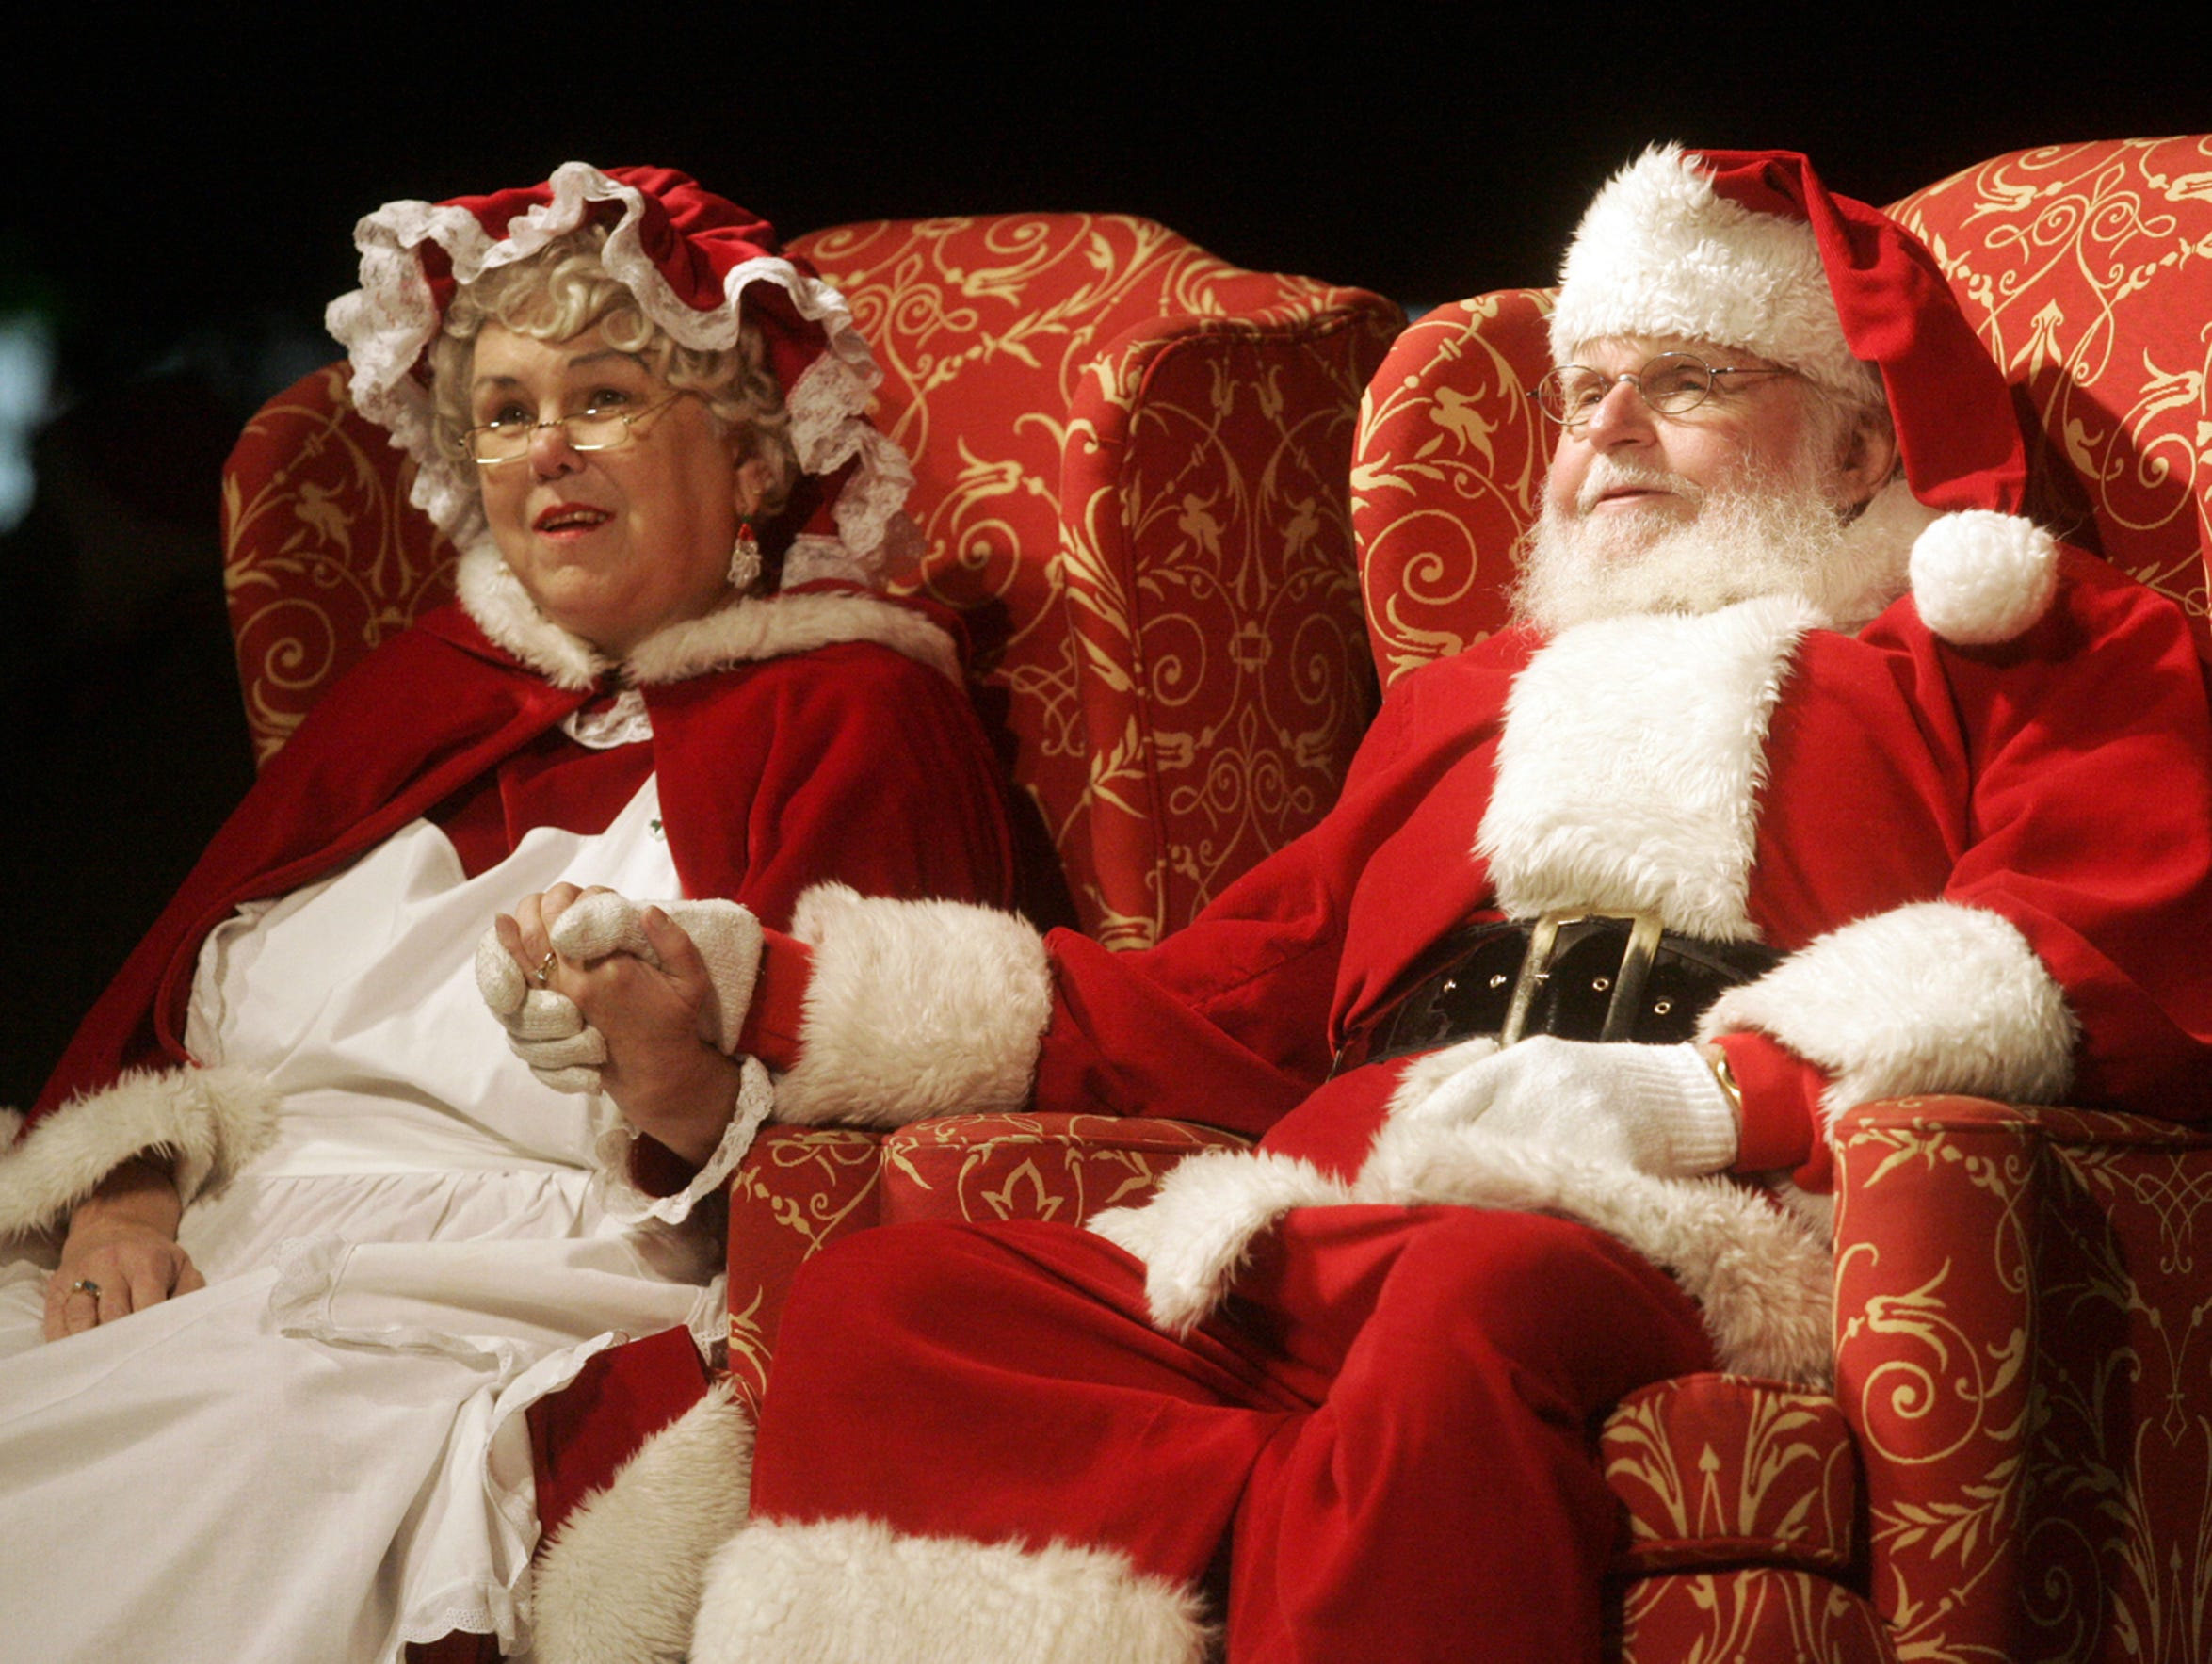 Santa and Mrs. Claus will be available for photos and